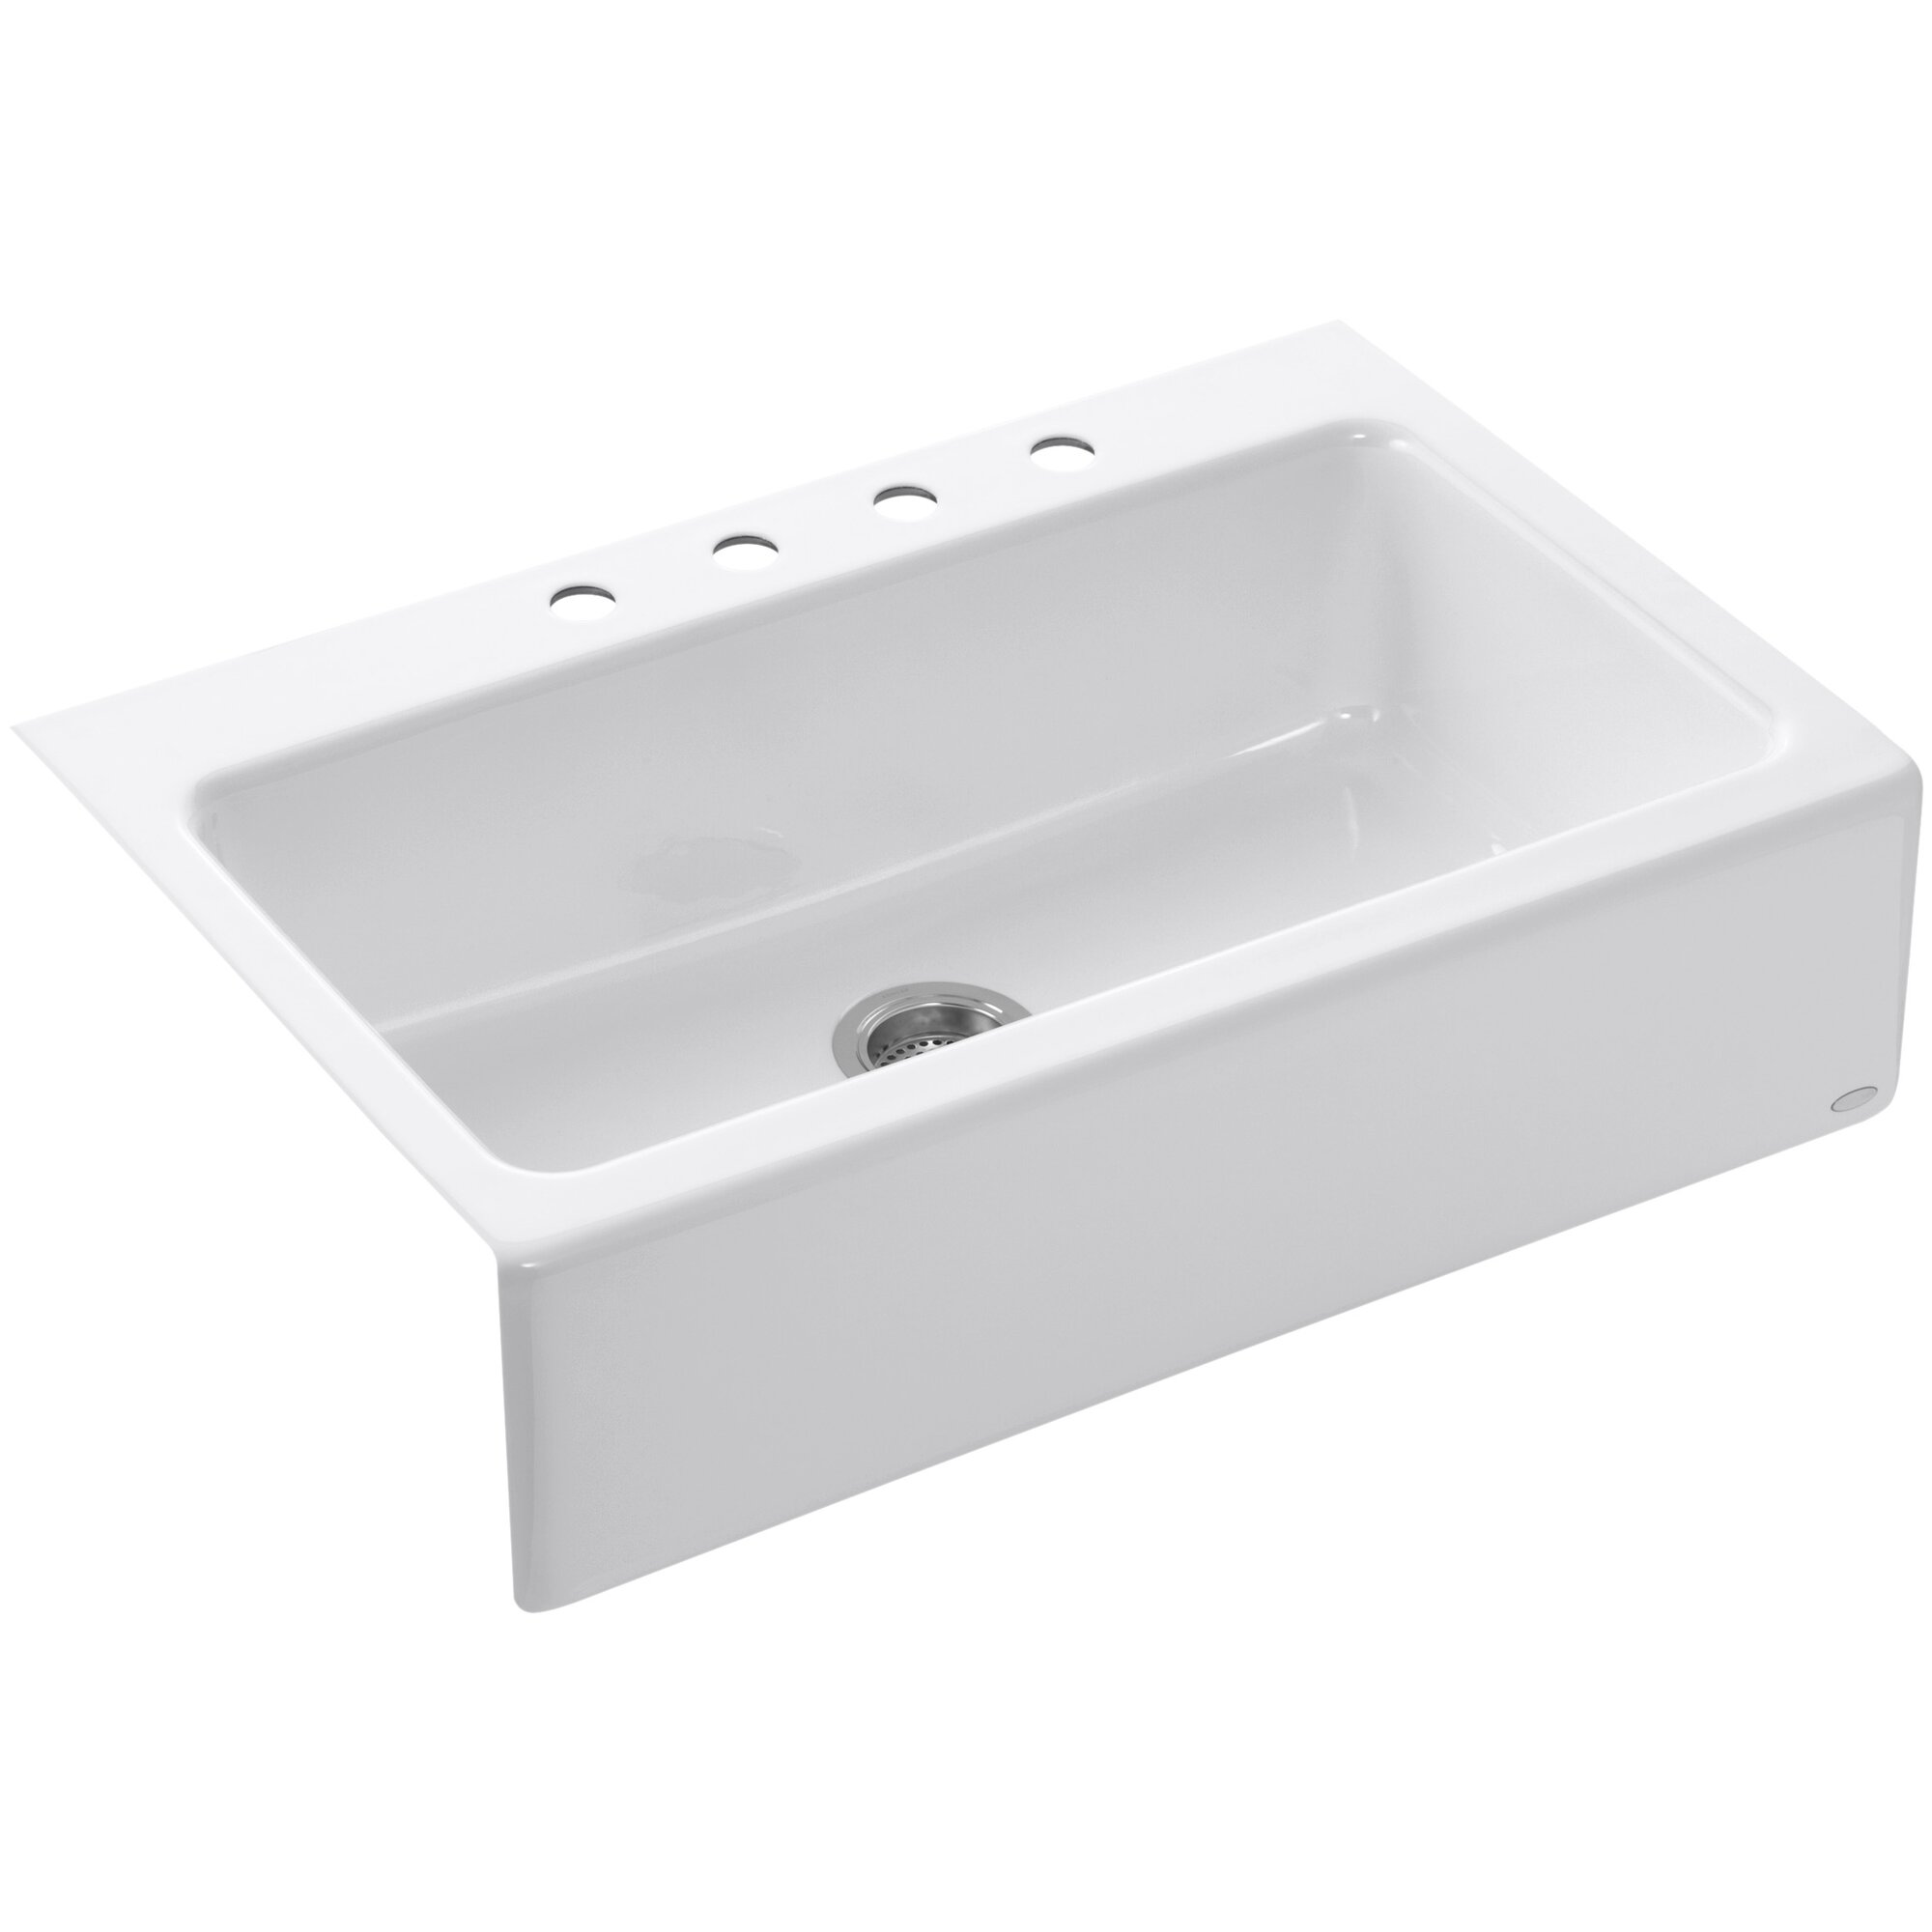 dickinson 33 x 22 18 x 8 34 - White Single Basin Kitchen Sink